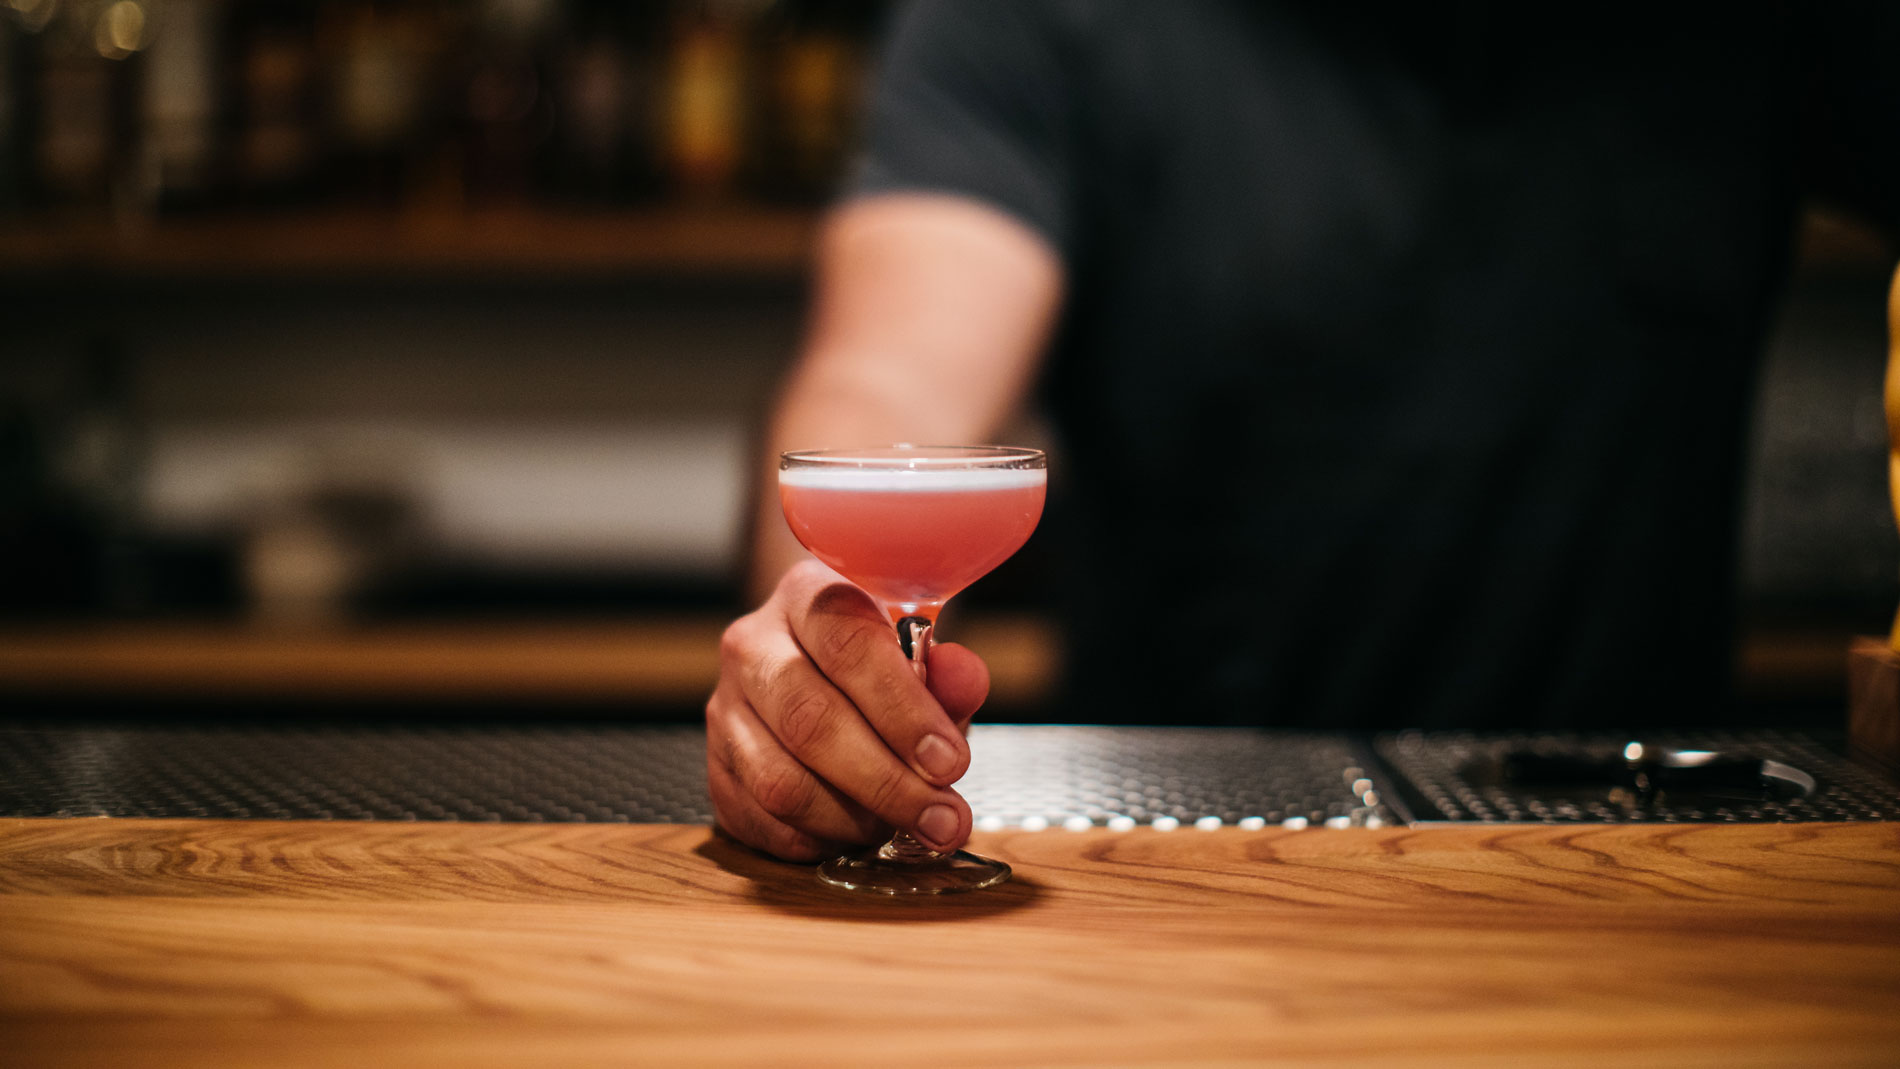 Cocktail Bars Are Layering Spirits to Create Ultra-Complex New Drinks